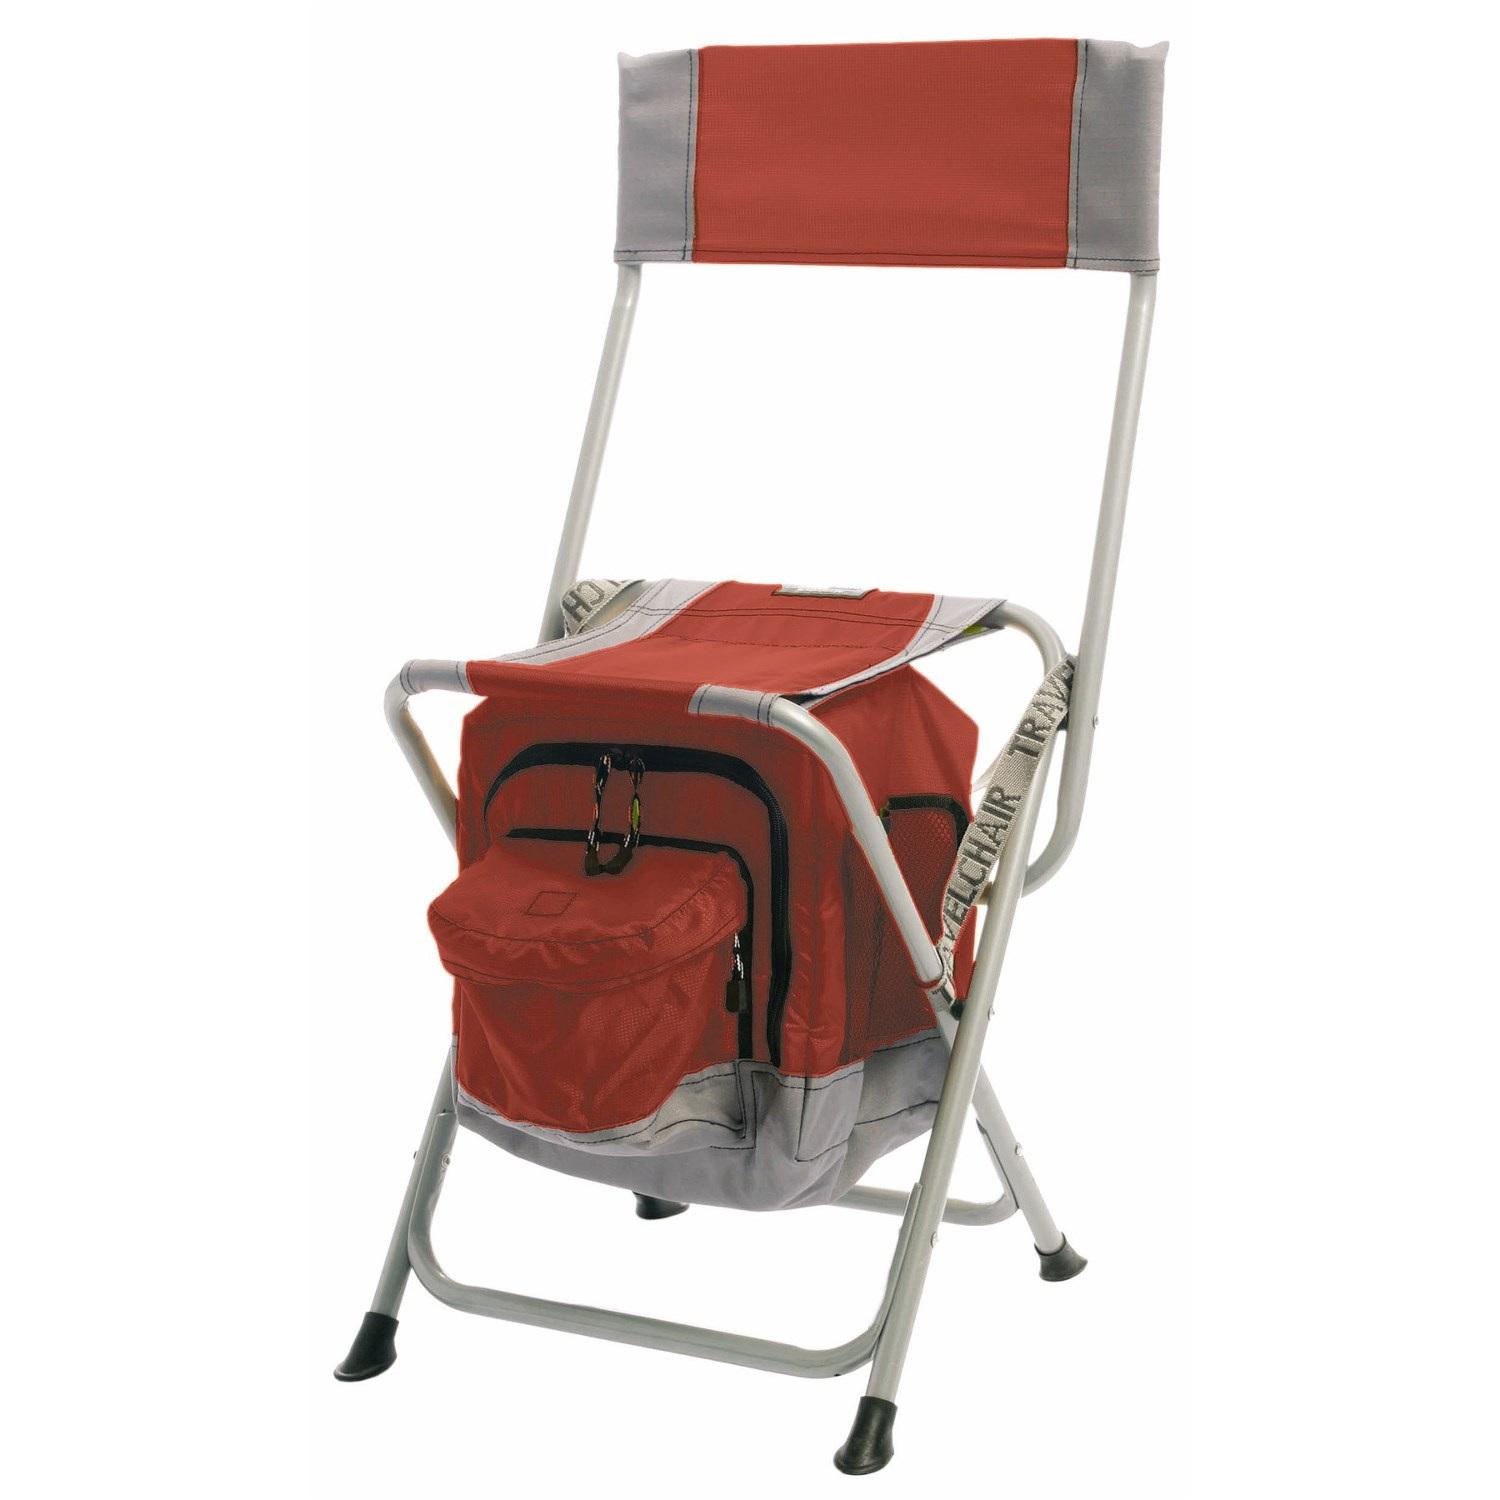 TravelChair Anywhere Folding Chair with Cooler Save 50%